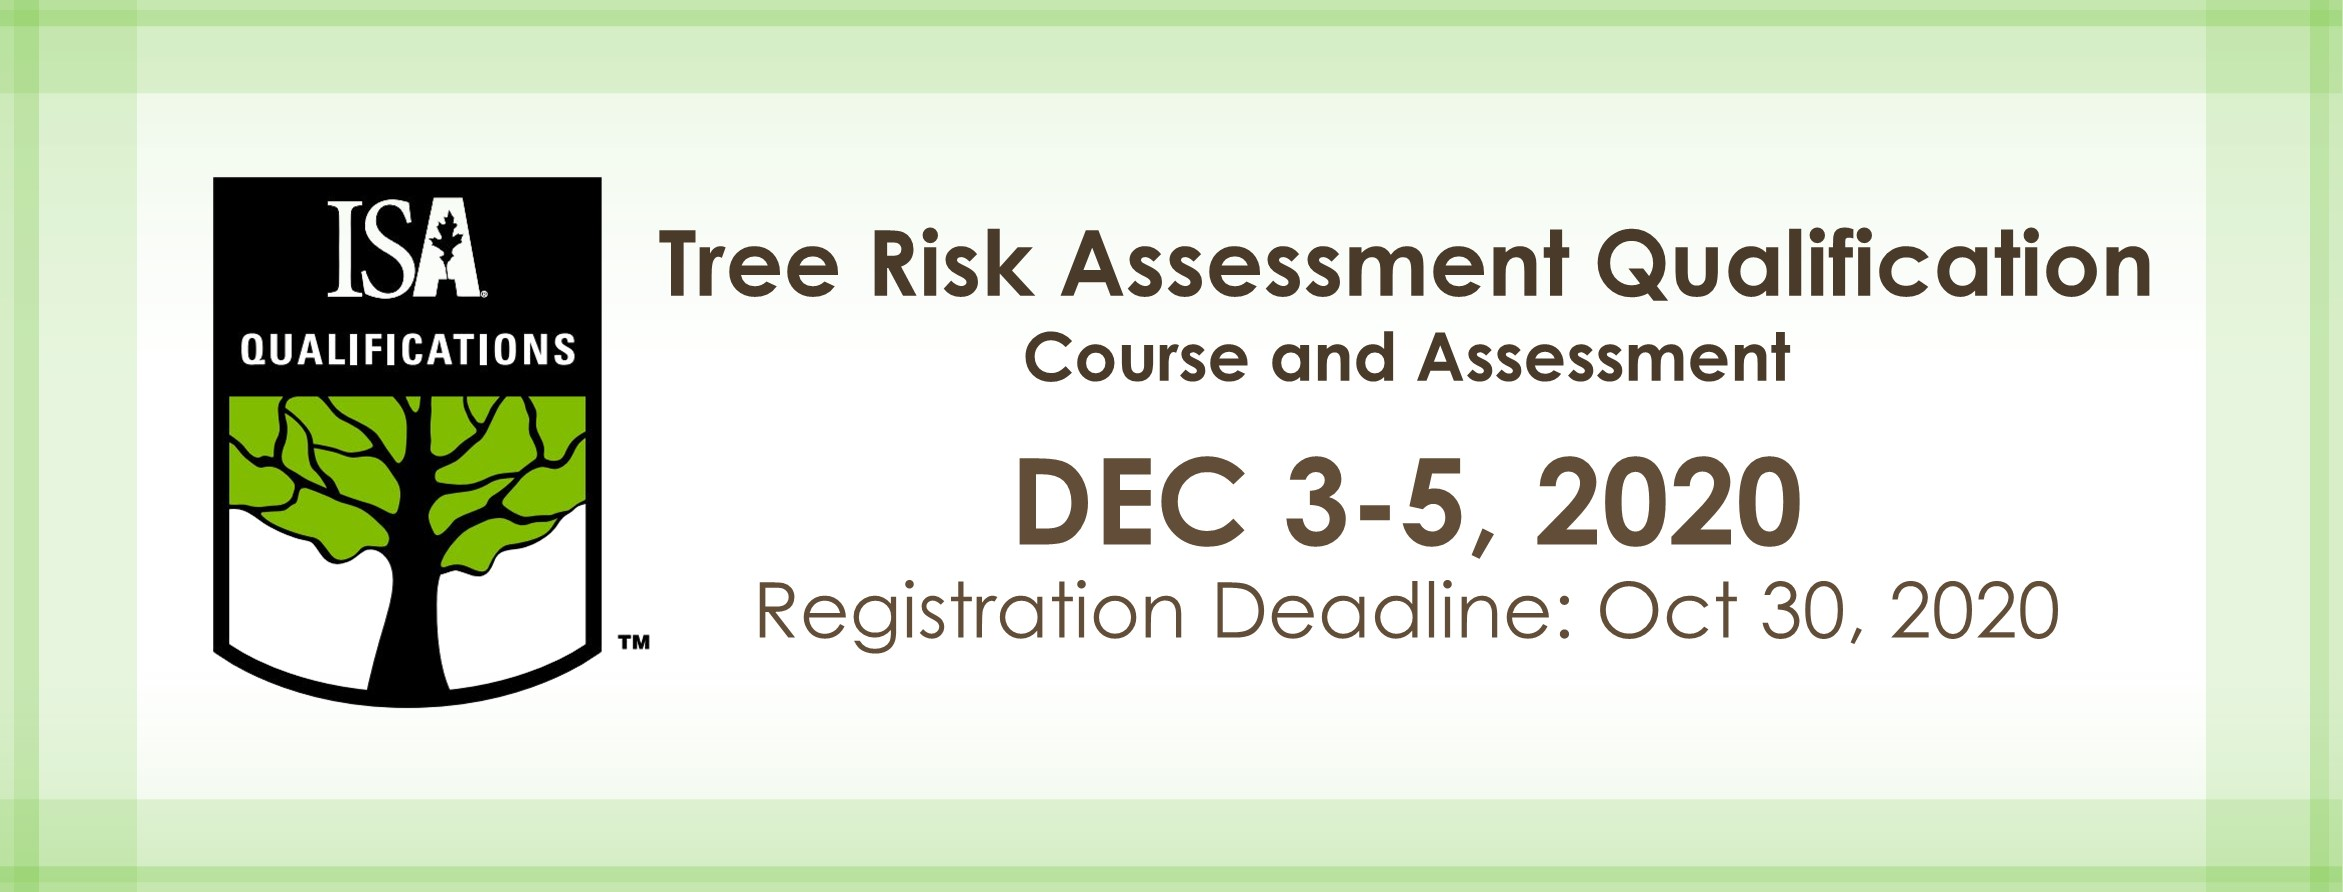 ISA Tree Risk Assessment Qualification course & assessment, Dec 3-5, 2020